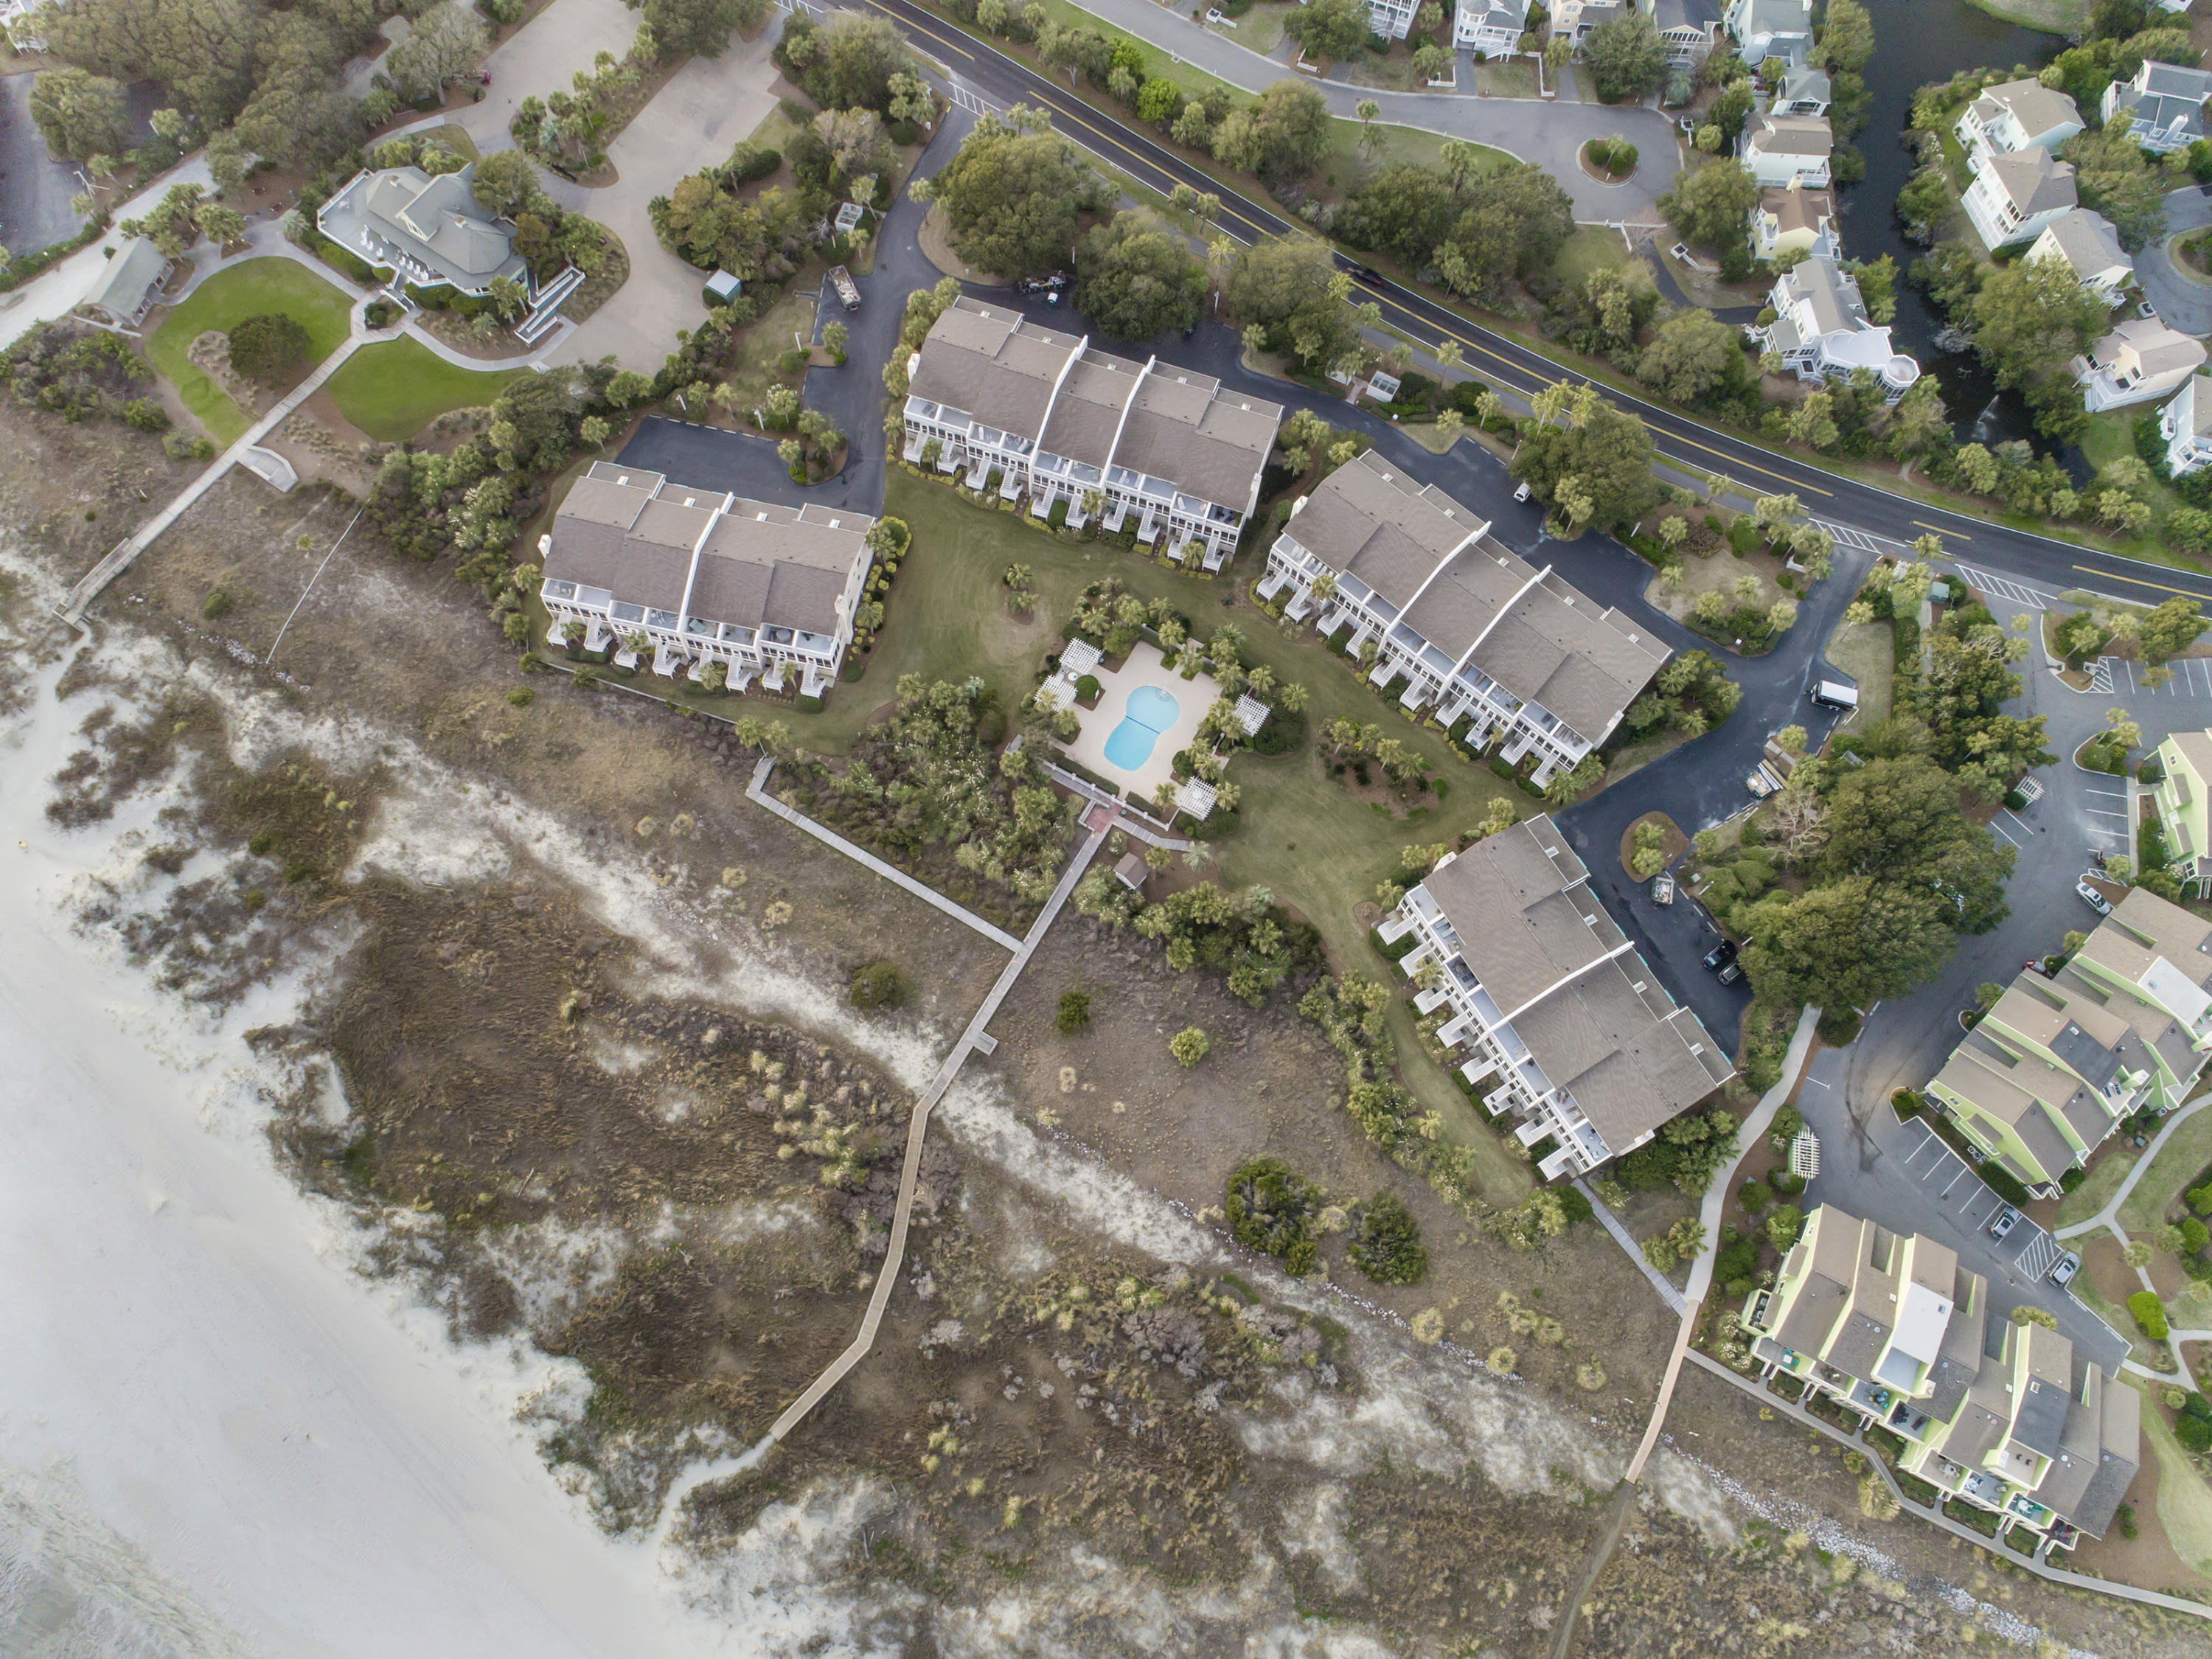 Beach Club Villas Homes For Sale - 51 Beach Club Villas, Isle of Palms, SC - 3